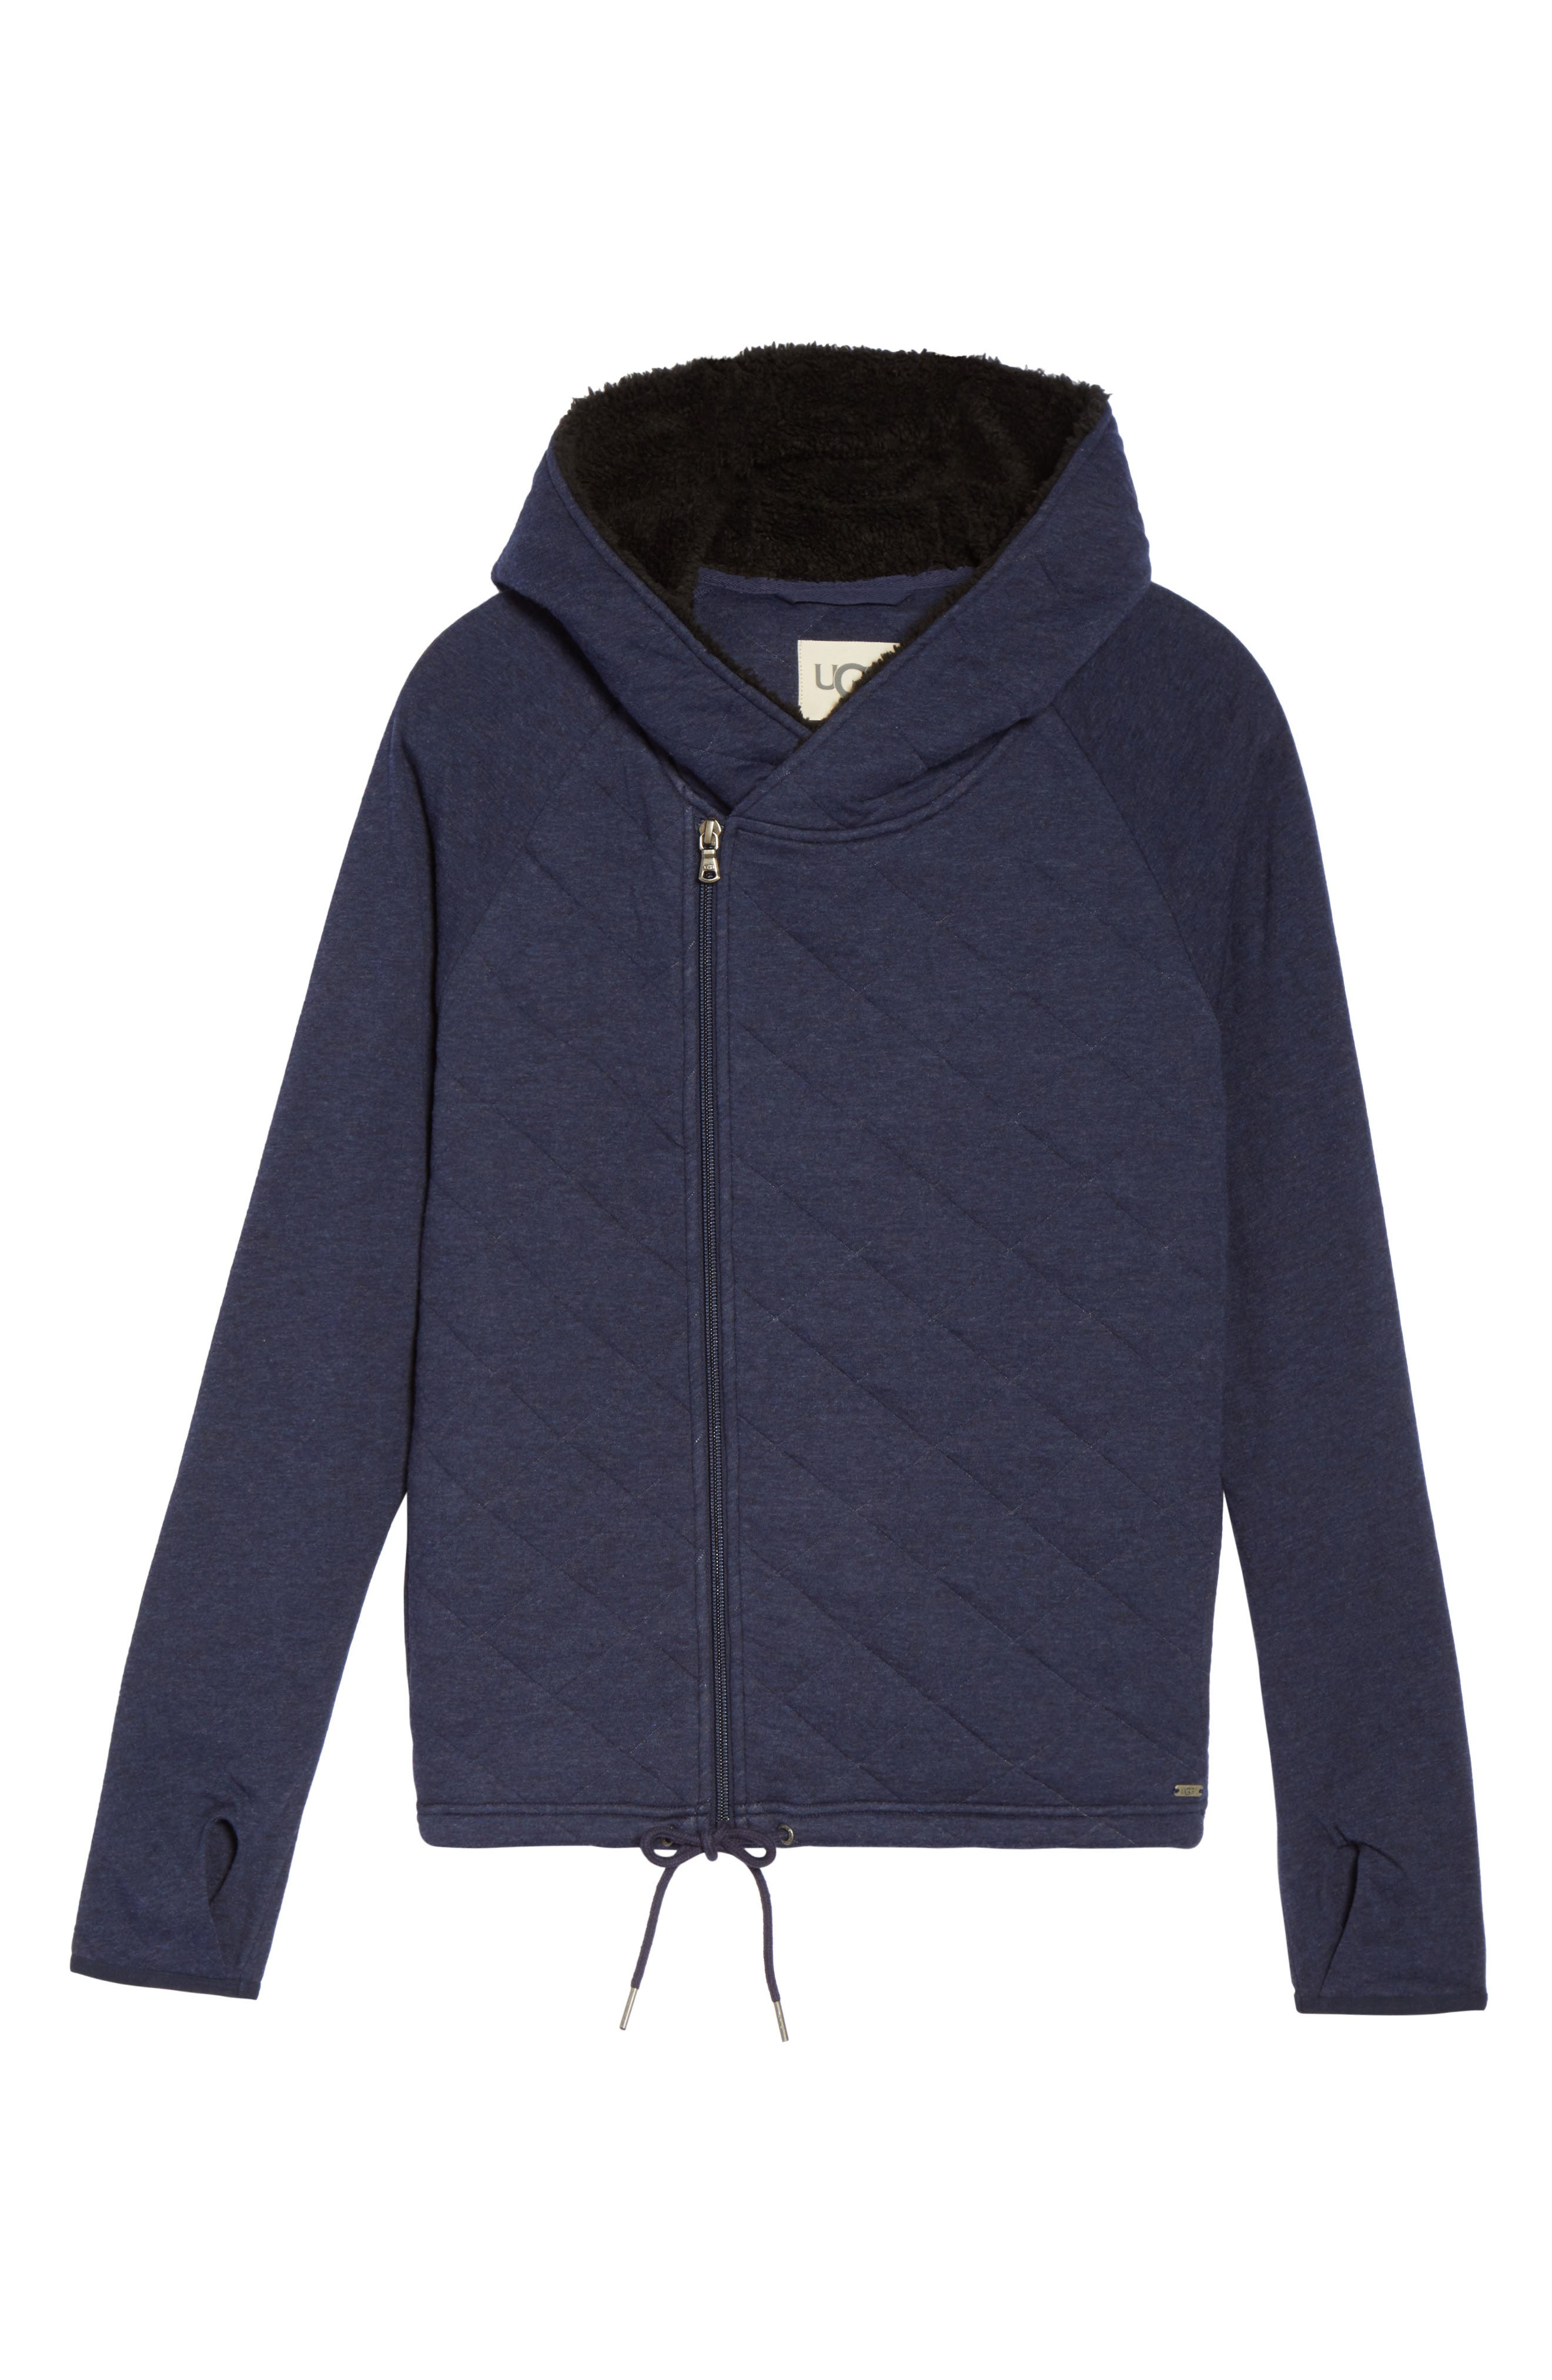 Australia Faux Shearling Lined Hoodie,                             Alternate thumbnail 4, color,                             Navy Heather